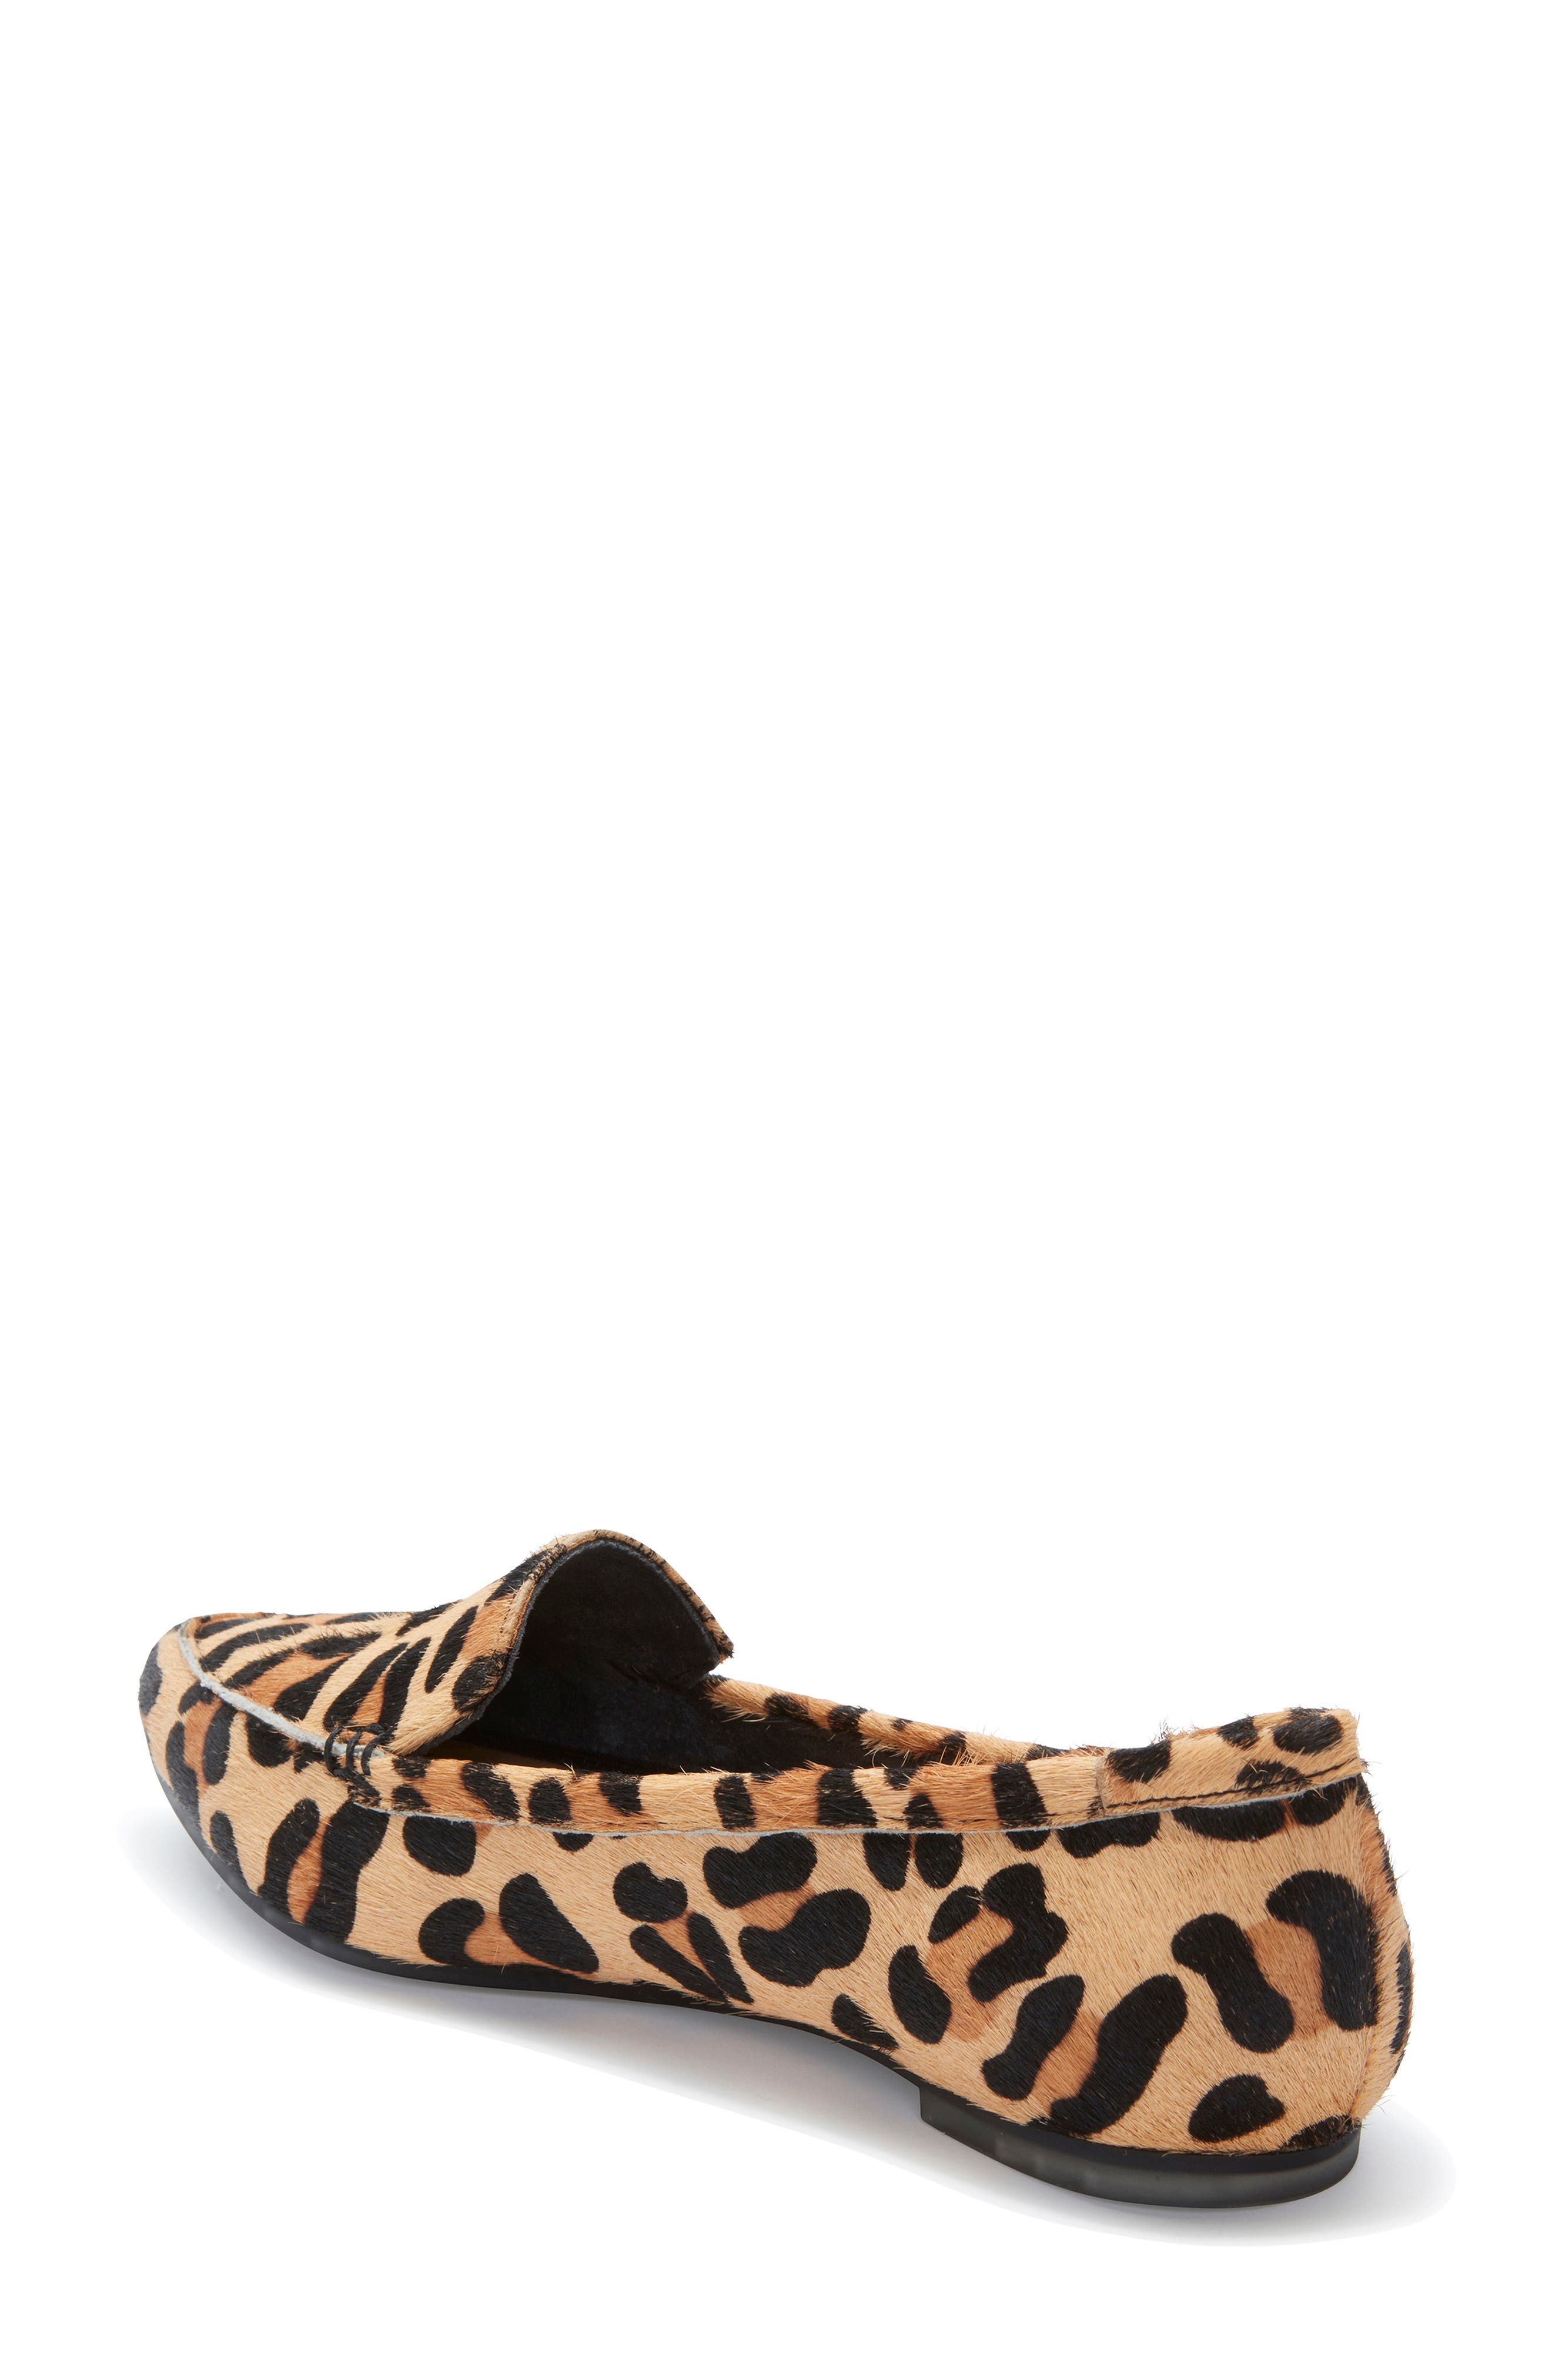 ME TOO, Audra Genuine Calf Hair Loafer Flat, Alternate thumbnail 2, color, TAN JAGUAR CALF HAIR